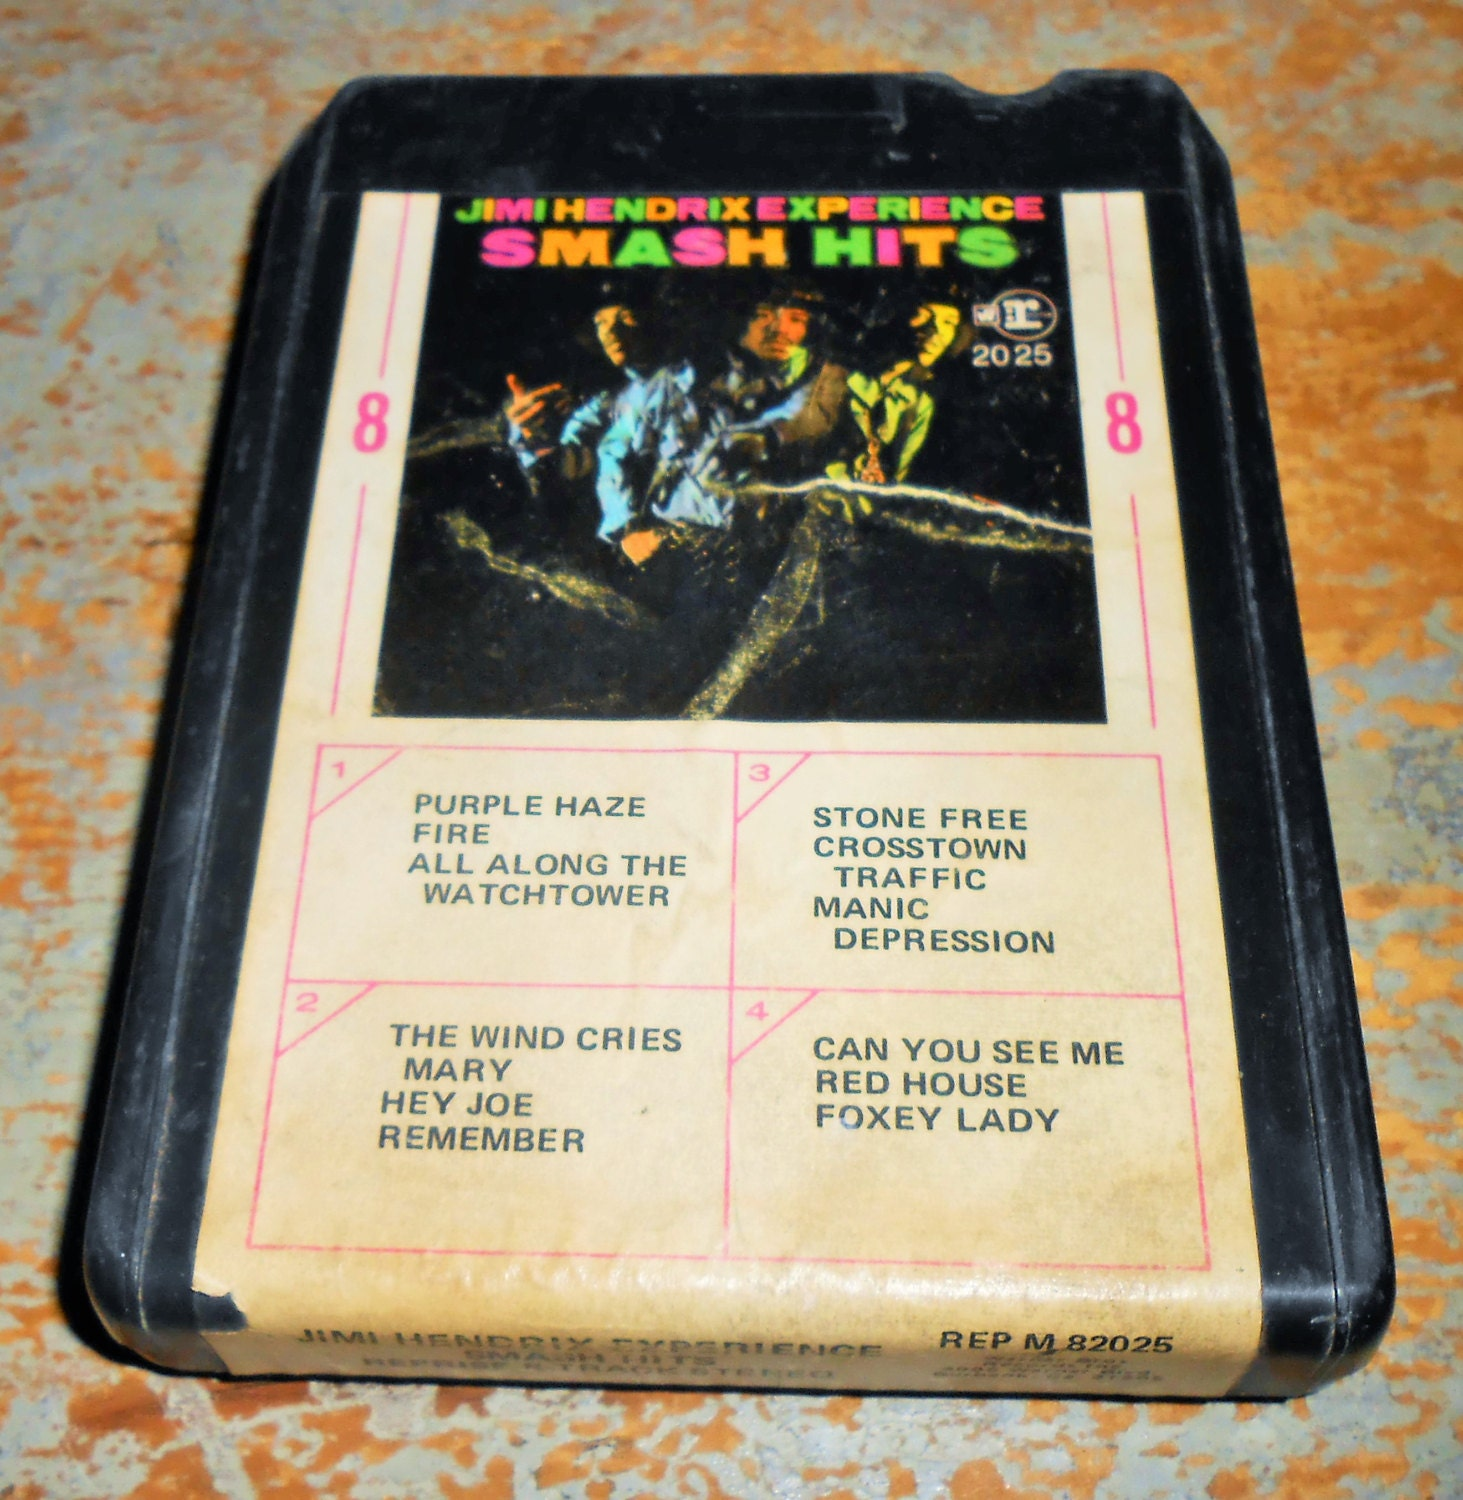 Inside Of A 8 Track Tape: Jimi Hendrix 8 Track Tape Experience Smash Hits 8 By